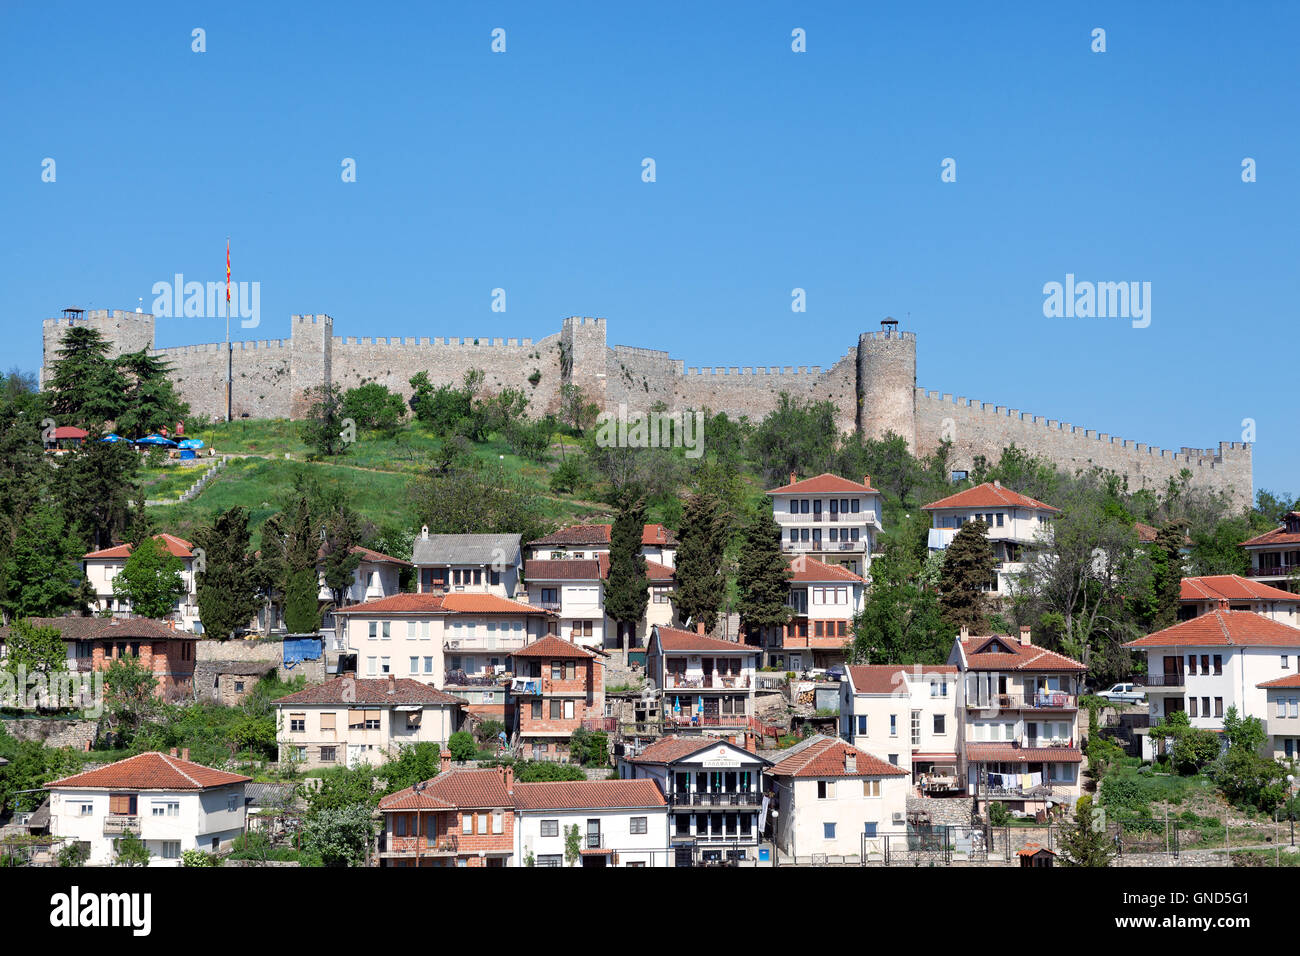 View of Ohrid old town dominated by Samuil's fortress, Macedonia - Stock Image